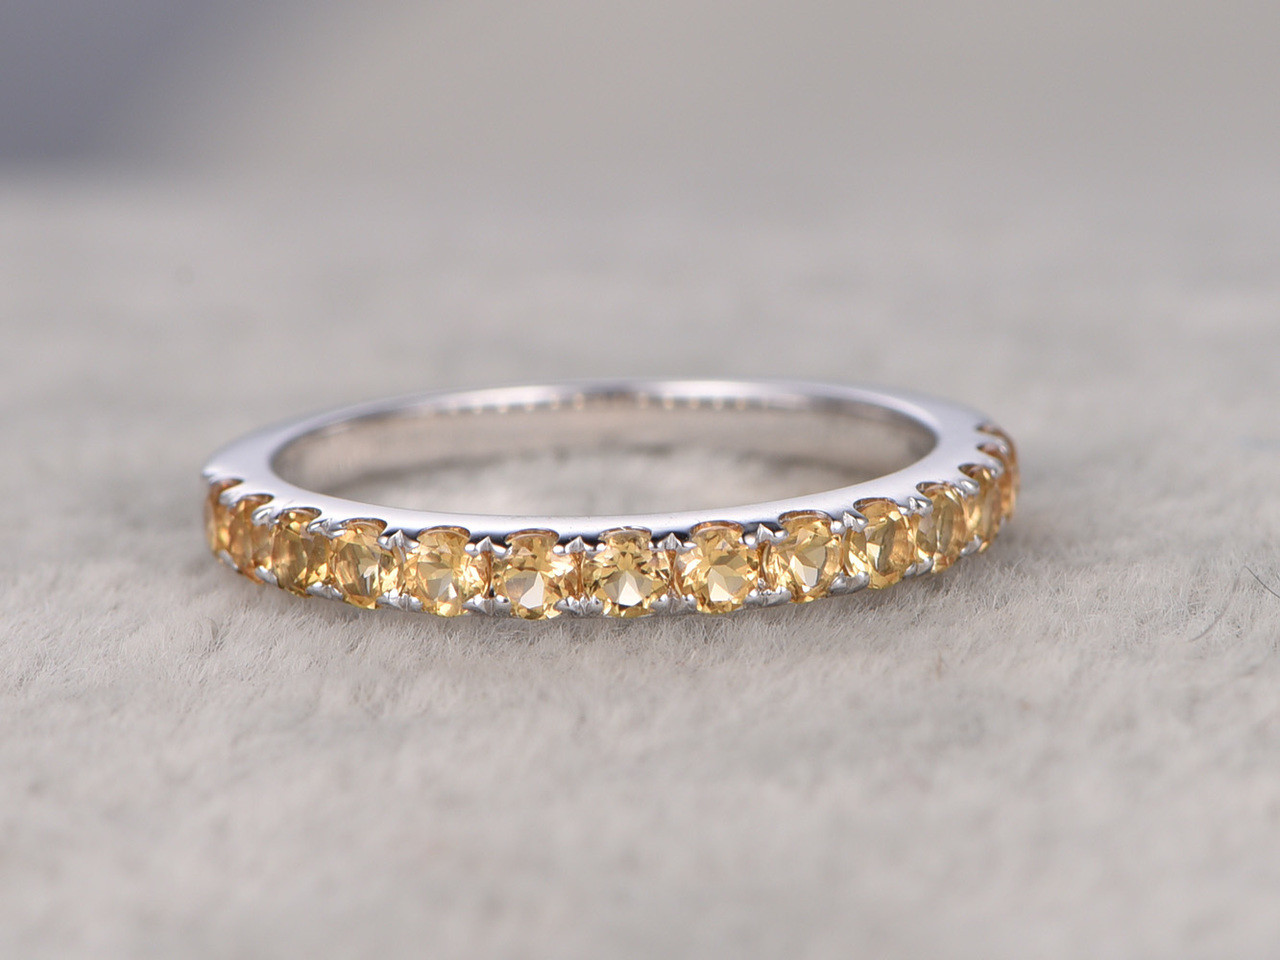 Citrine Wedding Rings For Her 14k White Gold Half Eternity Band Annivery Ring Yellow Gems